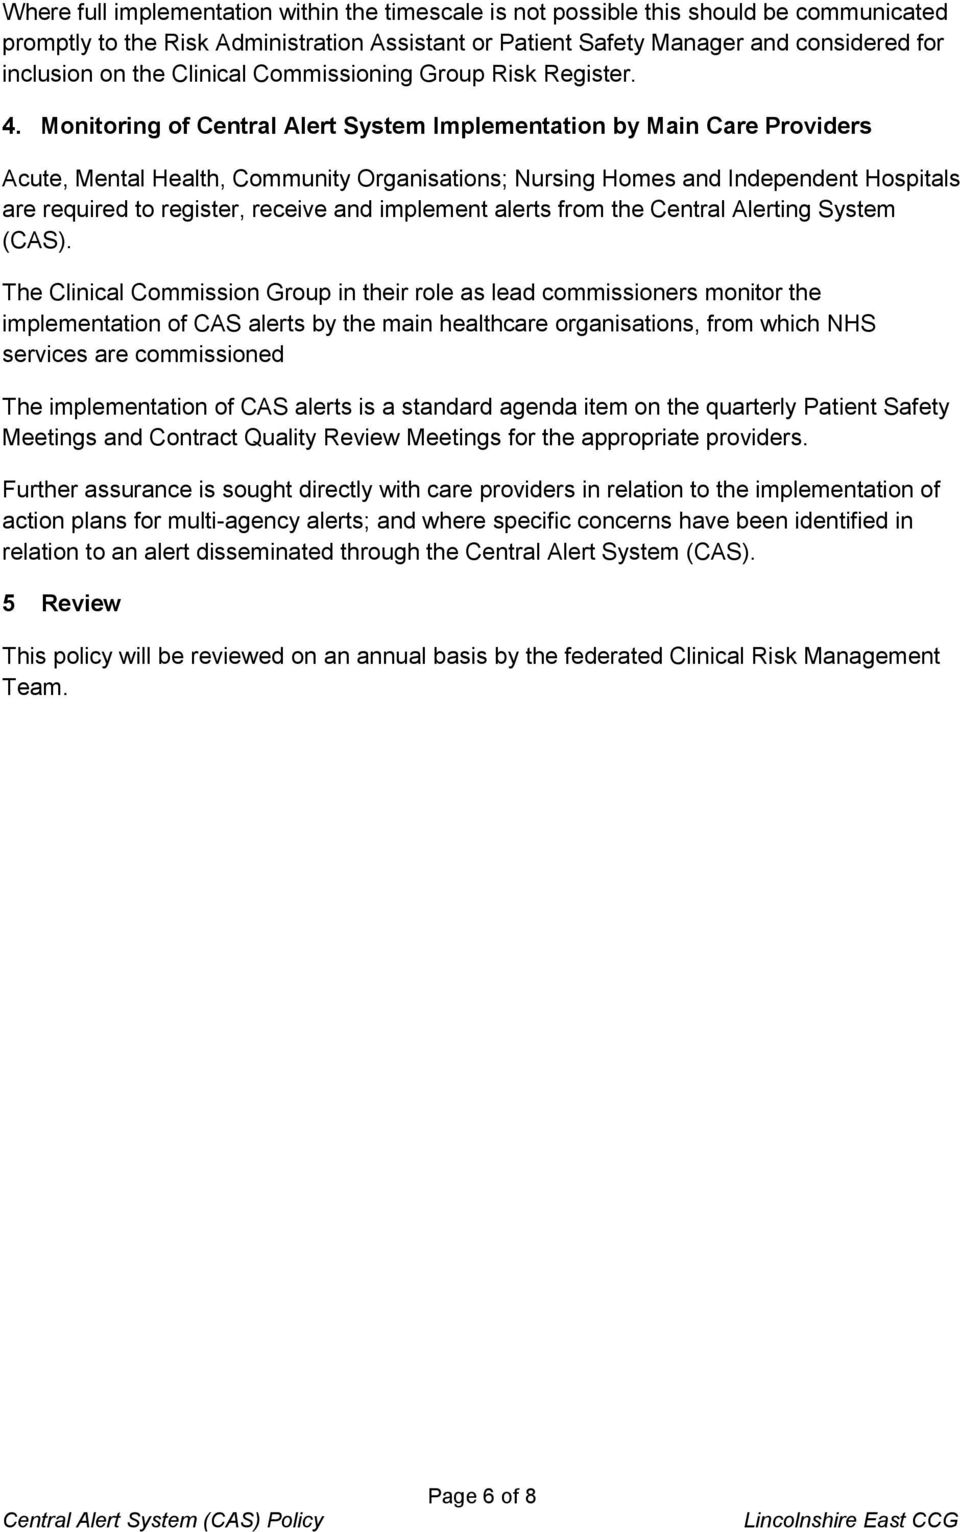 Monitoring of Central Alert System Implementation by Main Care Providers Acute, Mental Health, Community Organisations; Nursing Homes and Independent Hospitals are required to register, receive and